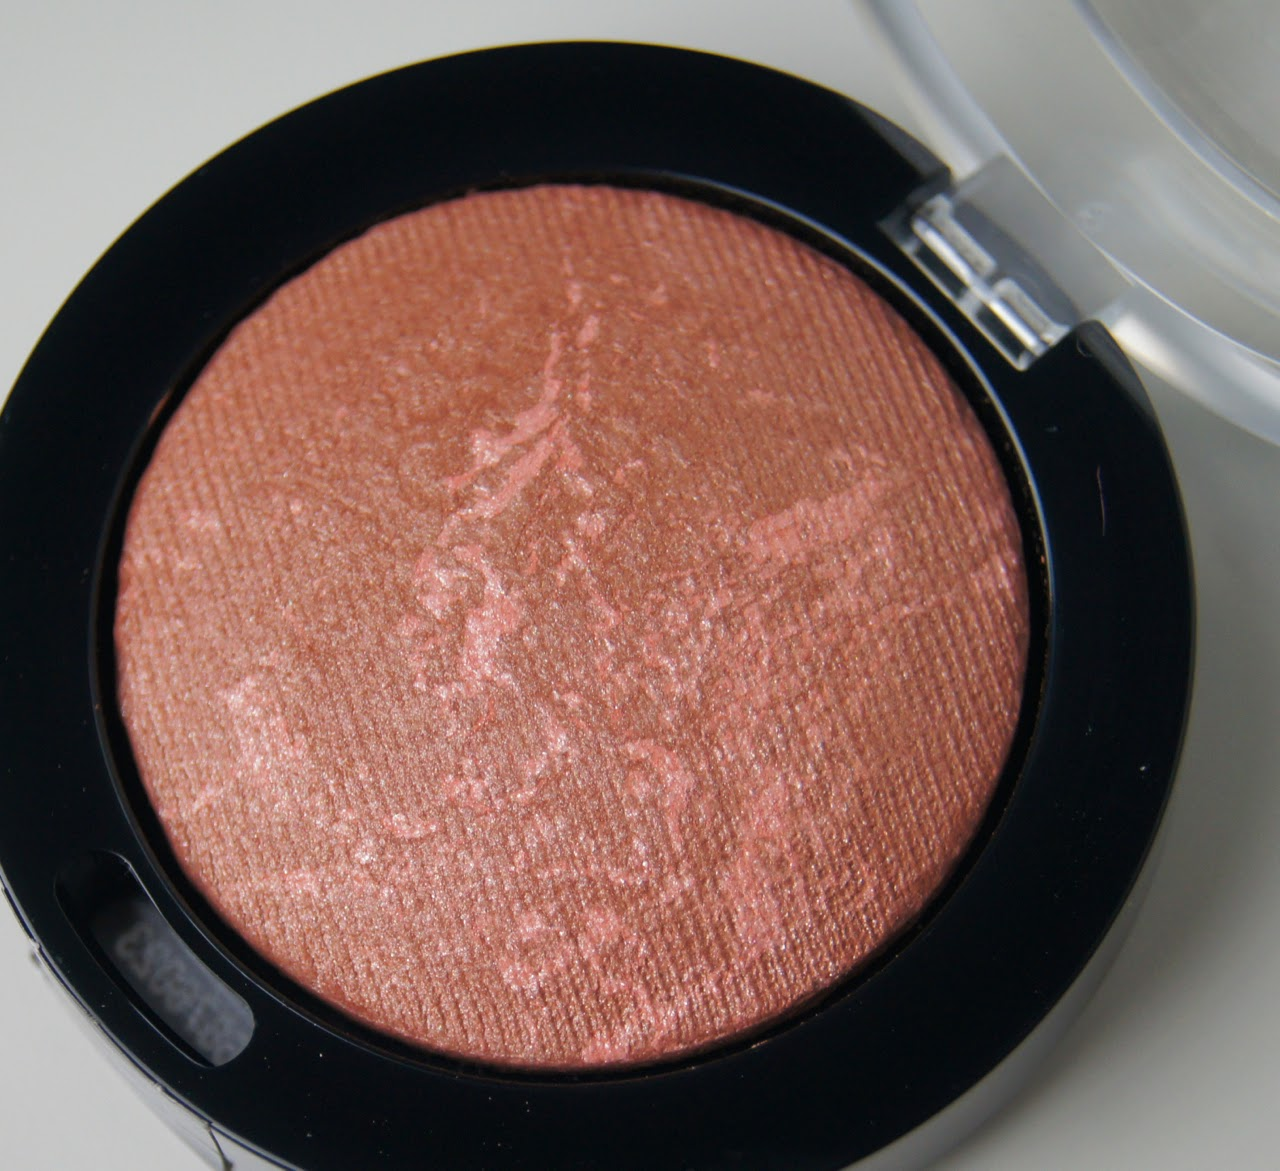 maxfactor creme puff blush 25 alluring rose review swatches